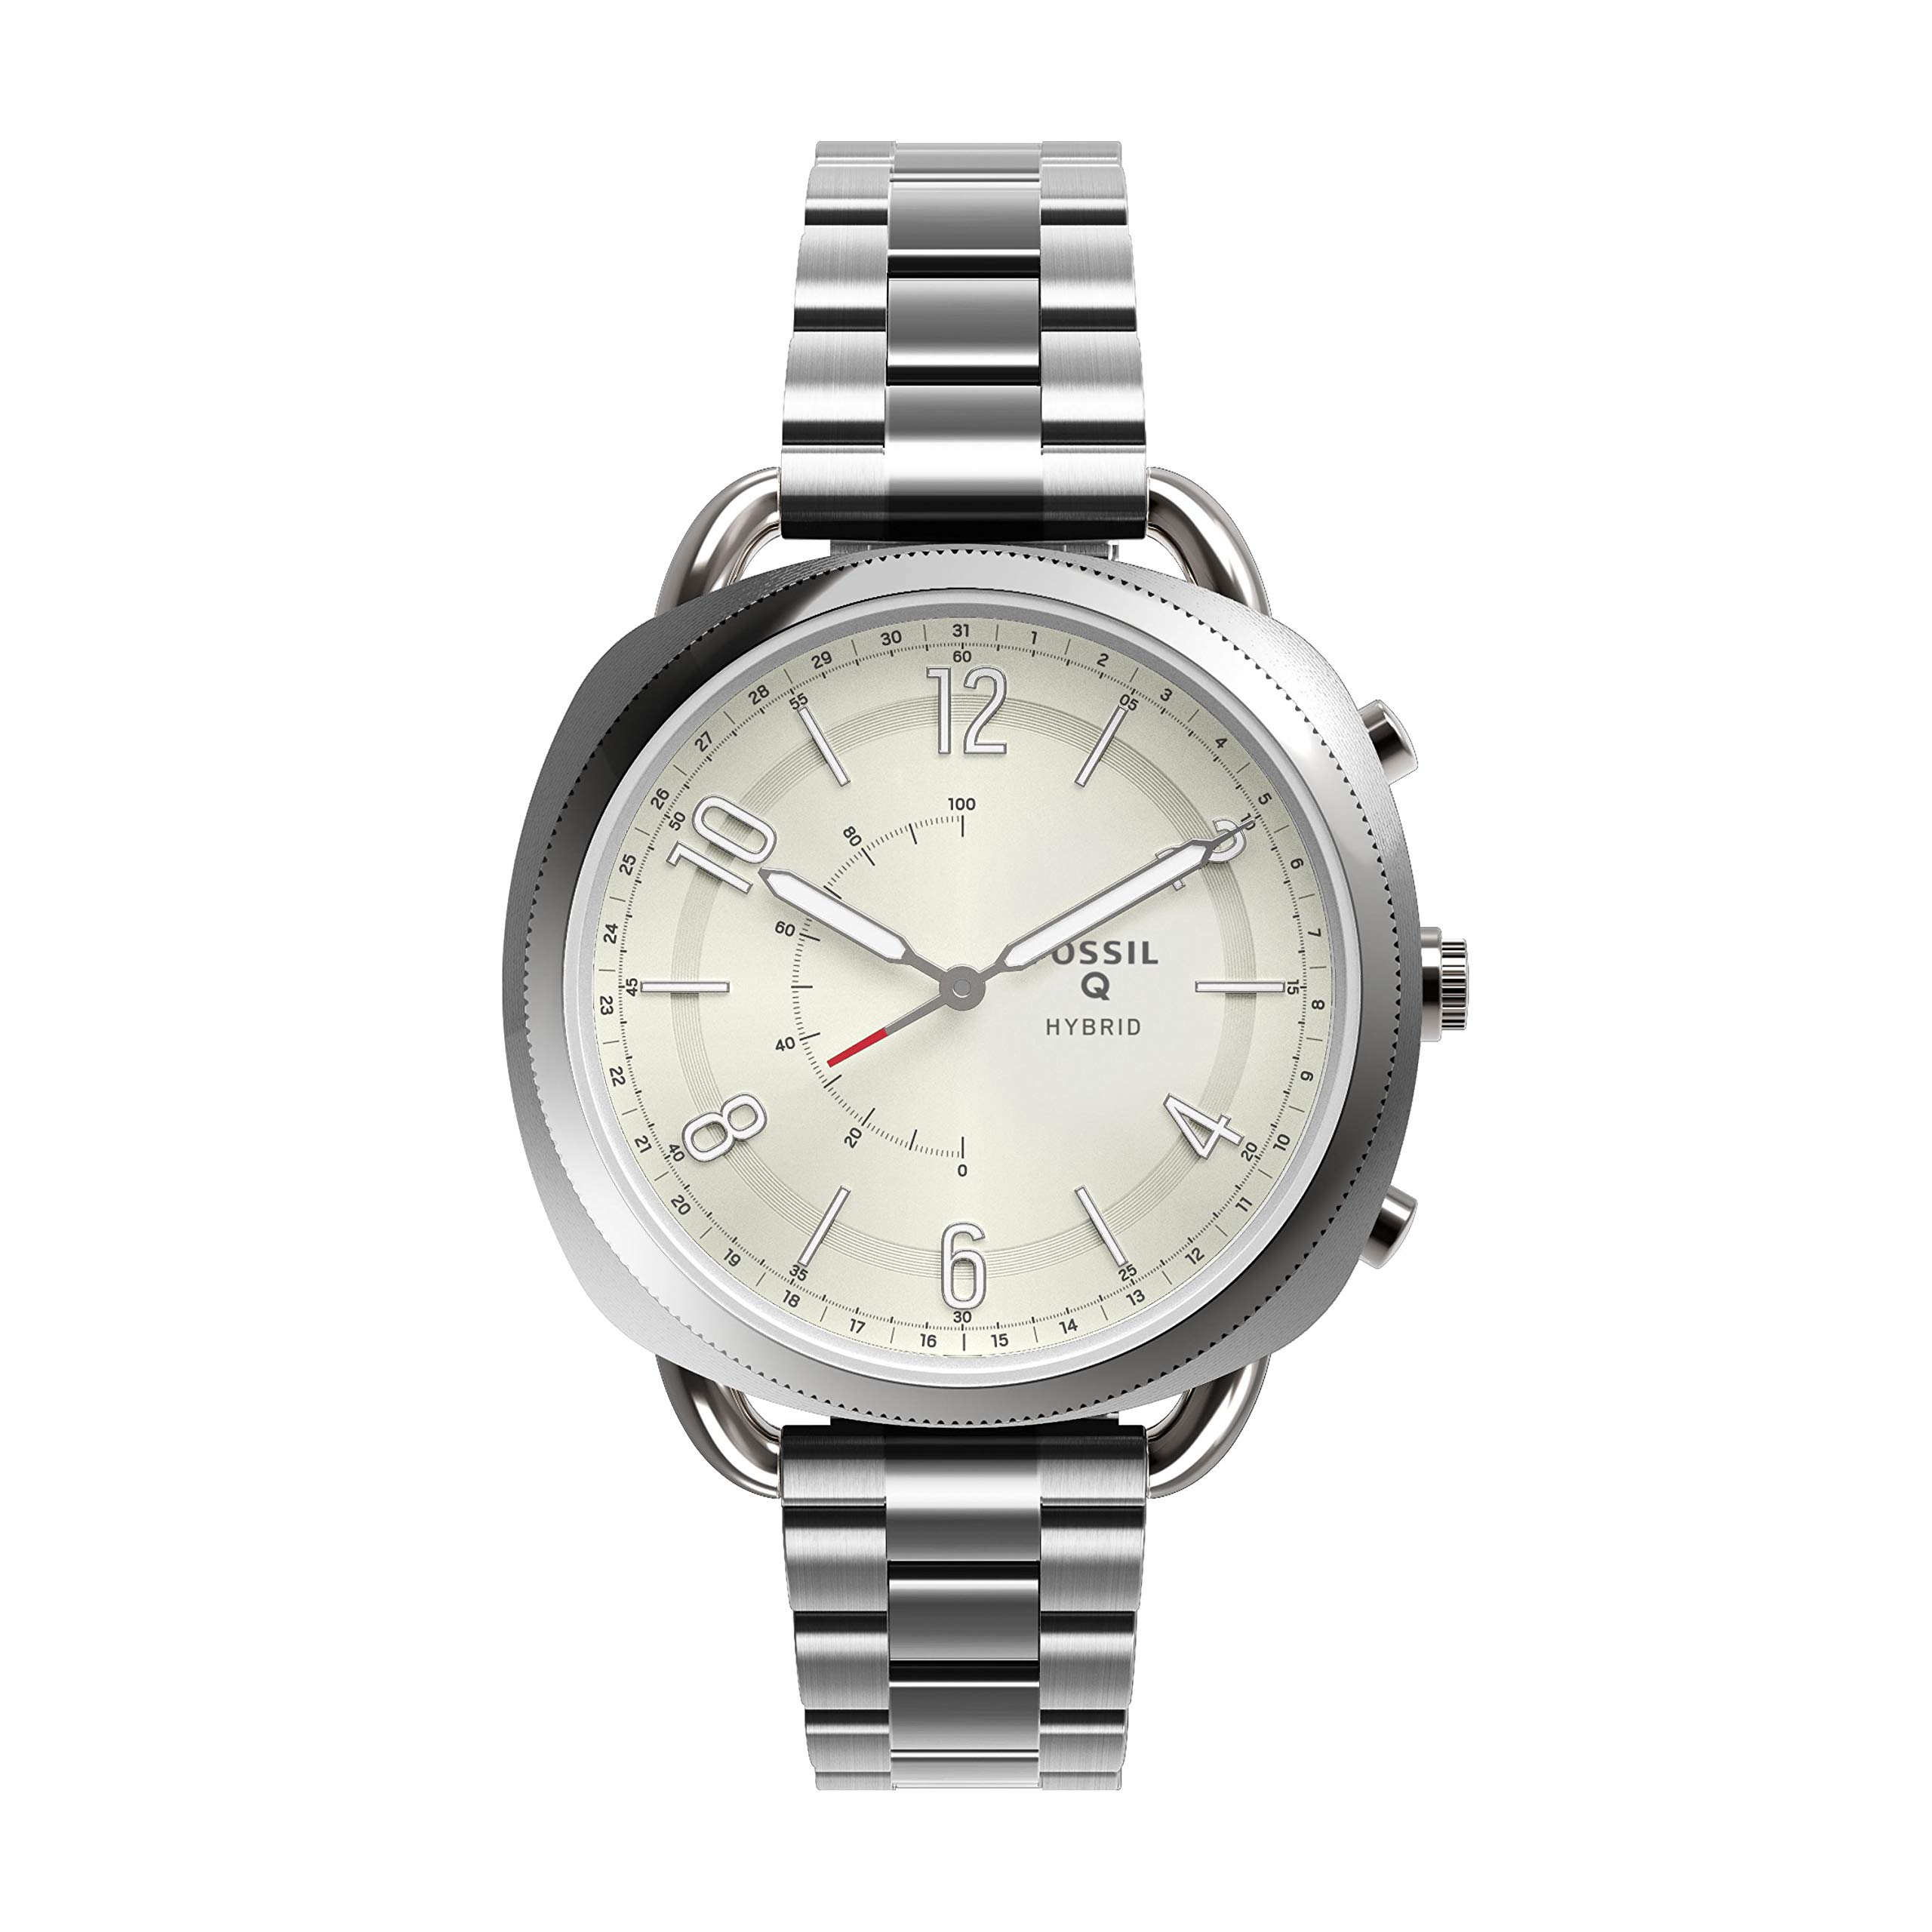 Fossil Women's Accomplice Stainless Steel Hybrid Smartwatch Color: Silver (Model: FTW1202)